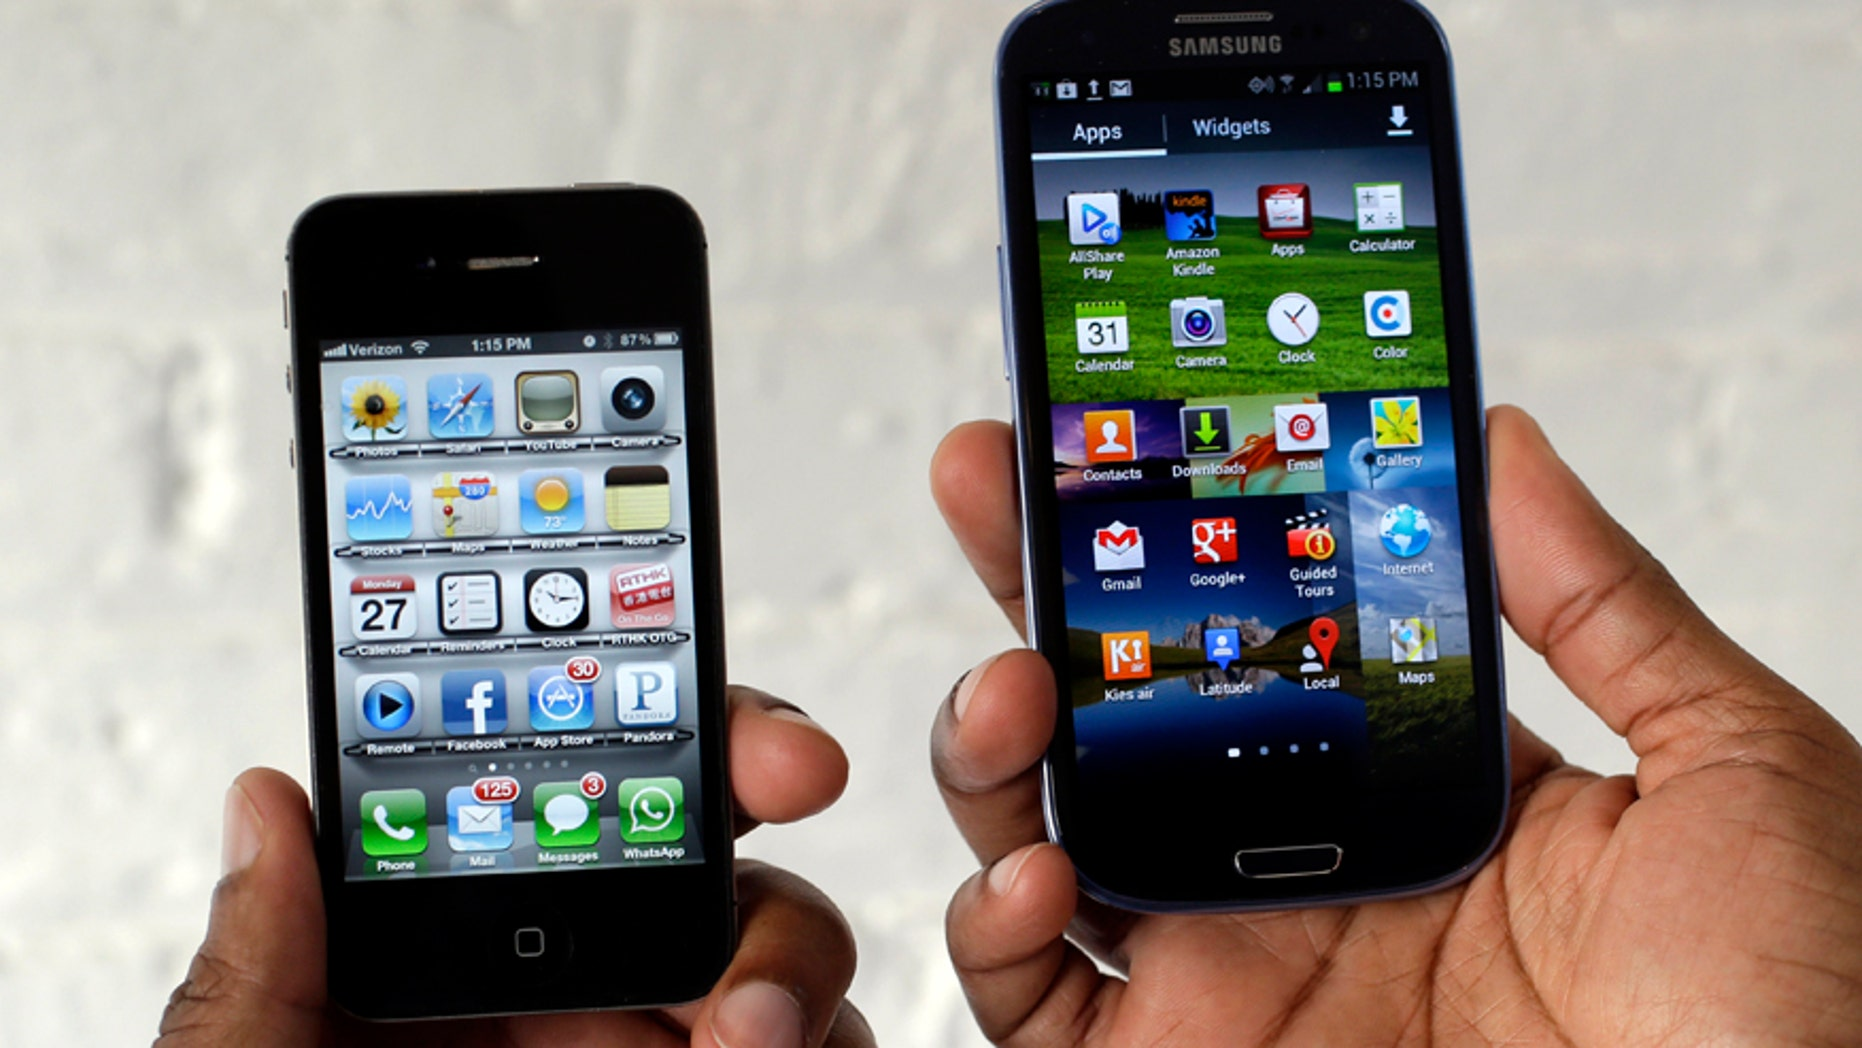 In this Aug. 27, 2012 photo, the Apple iPhone 4s, left, is displayed next to the Samsung Galaxy S III at a store in San Francisco.